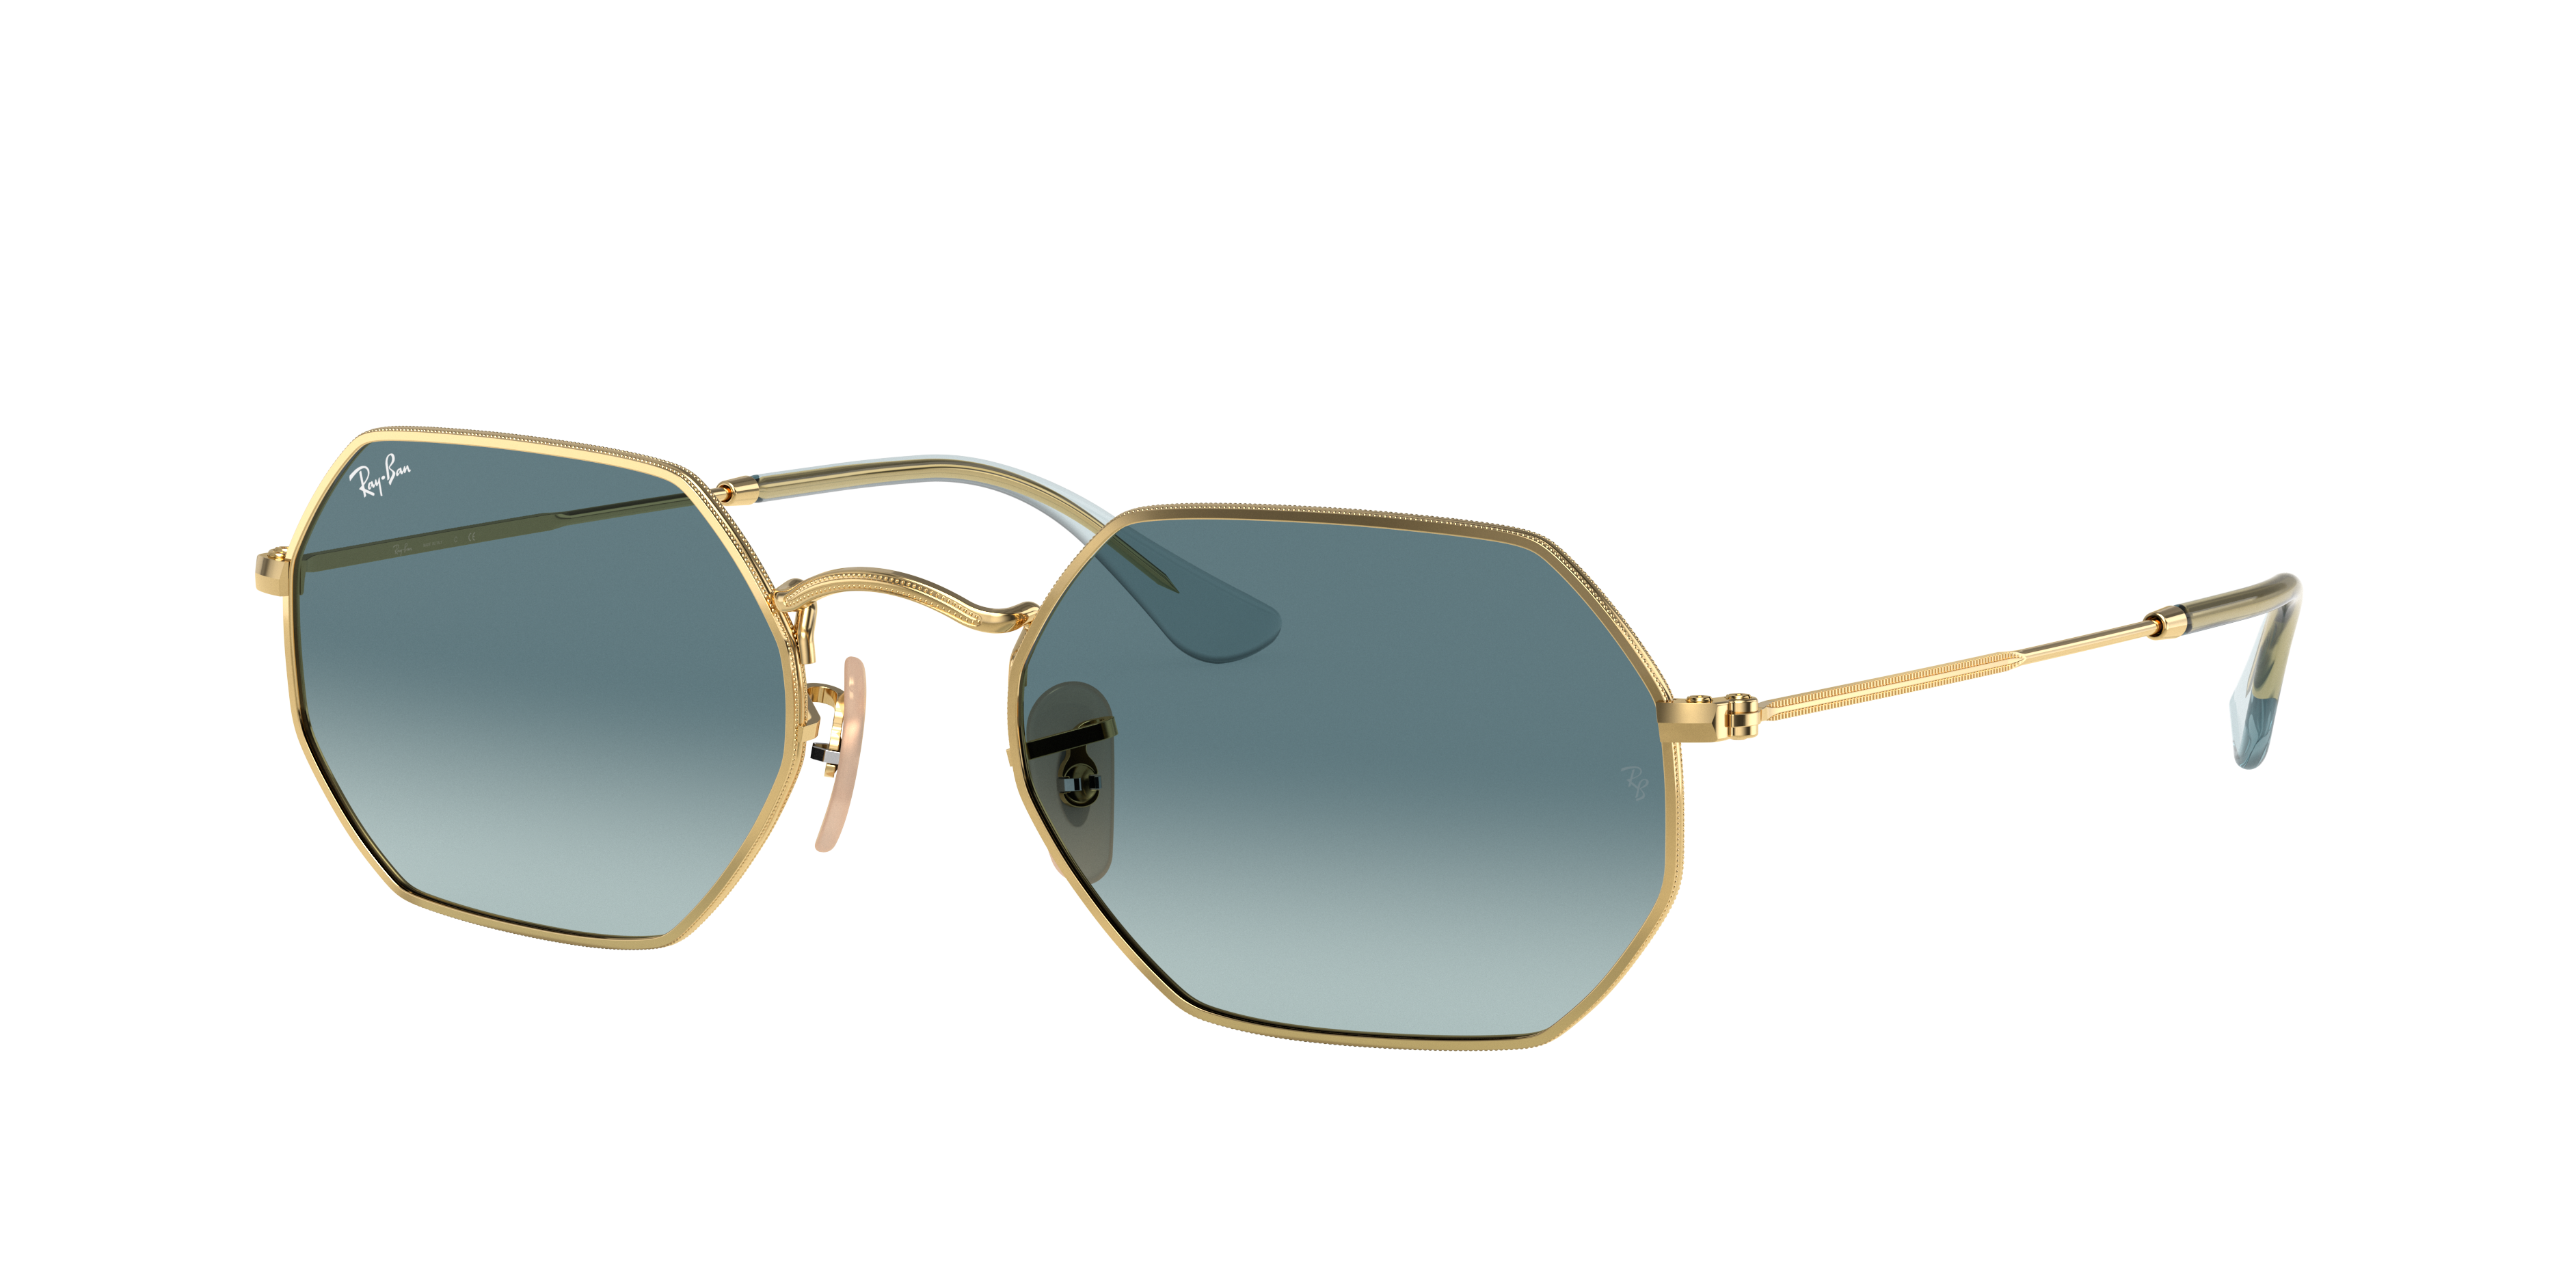 Ray-Ban Octagonal Classic Gold, Blue Lenses - RB3556N